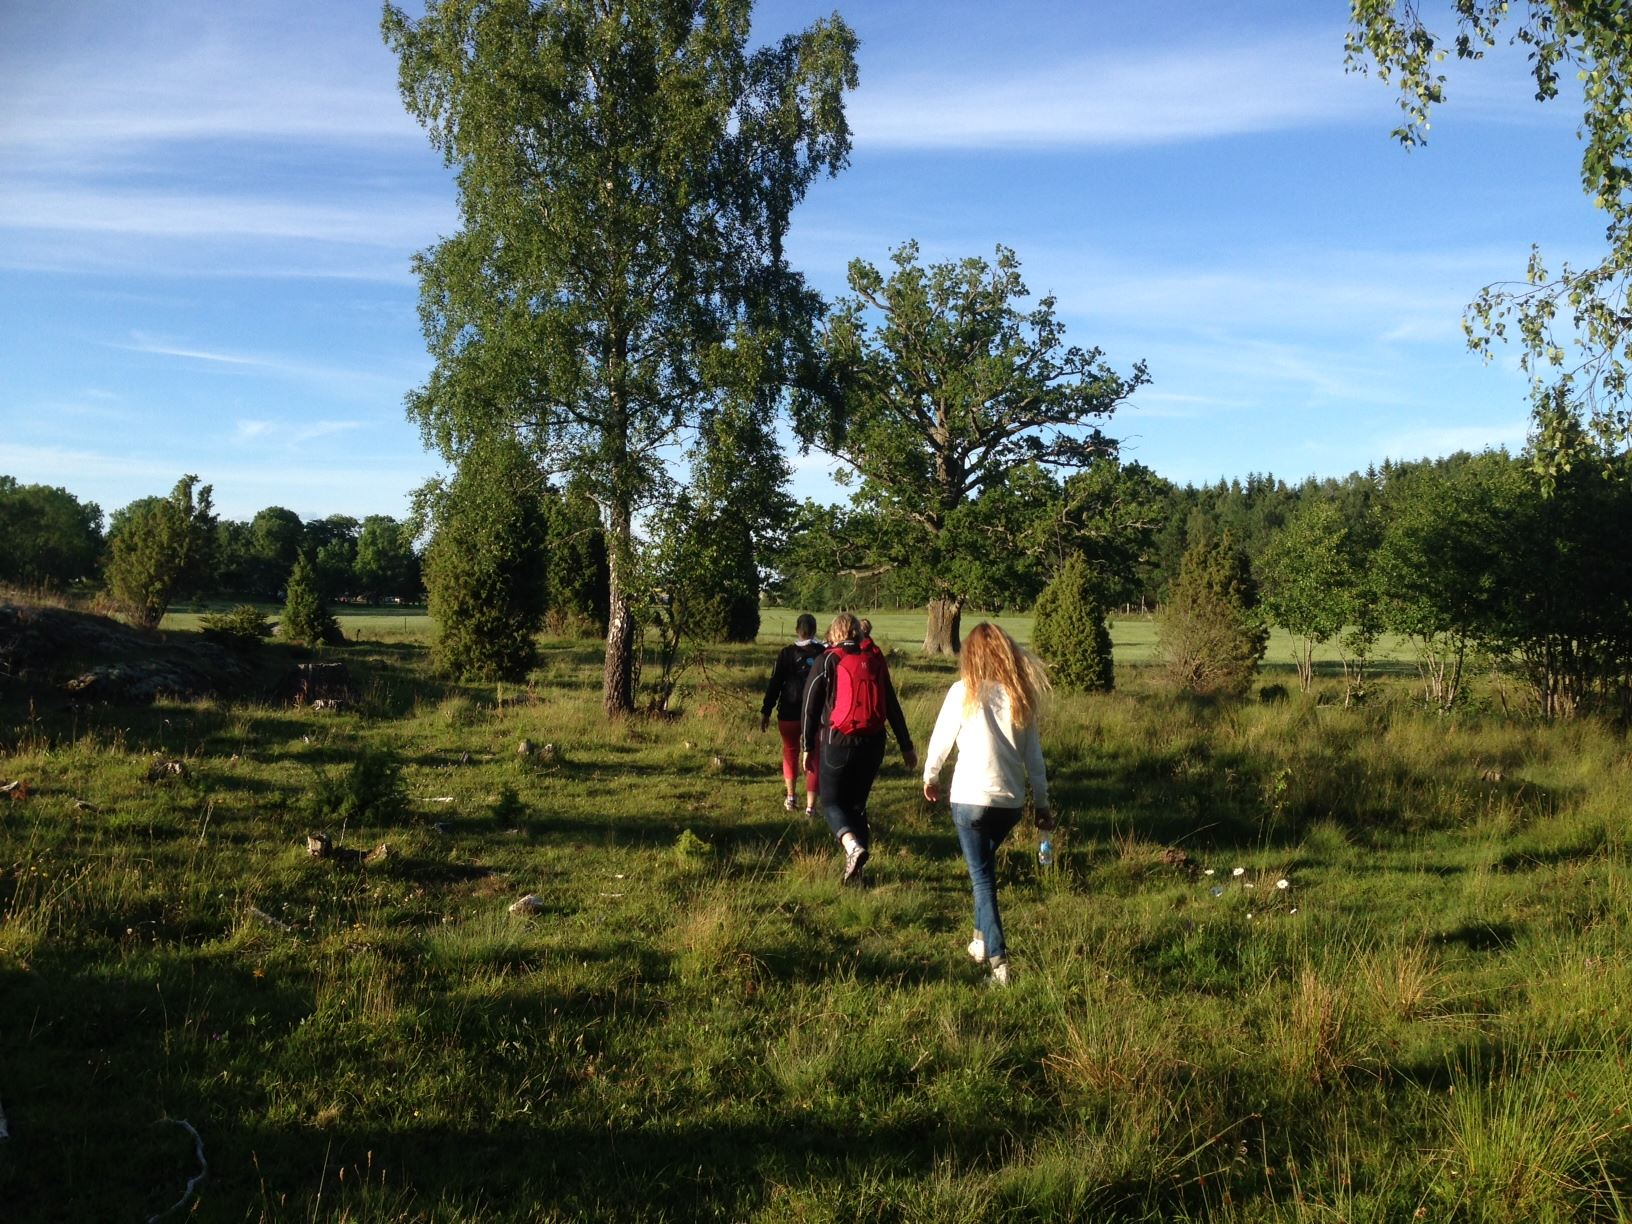 Walking in the Läckö-Kinnekulle